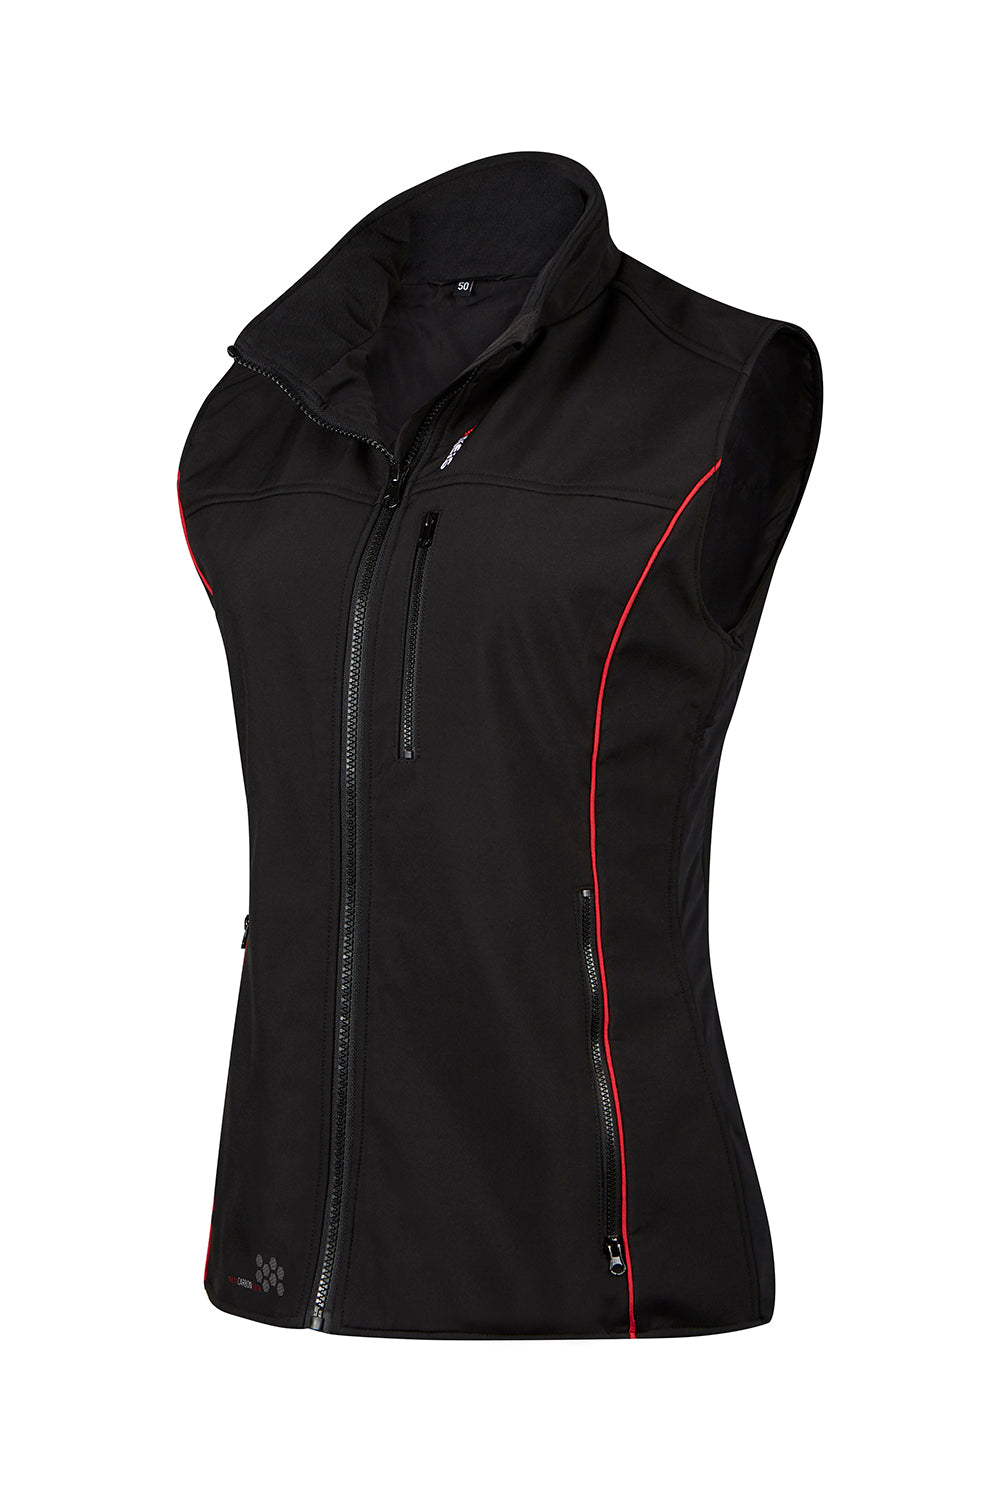 Keis ladies bodywarmer black with red piping